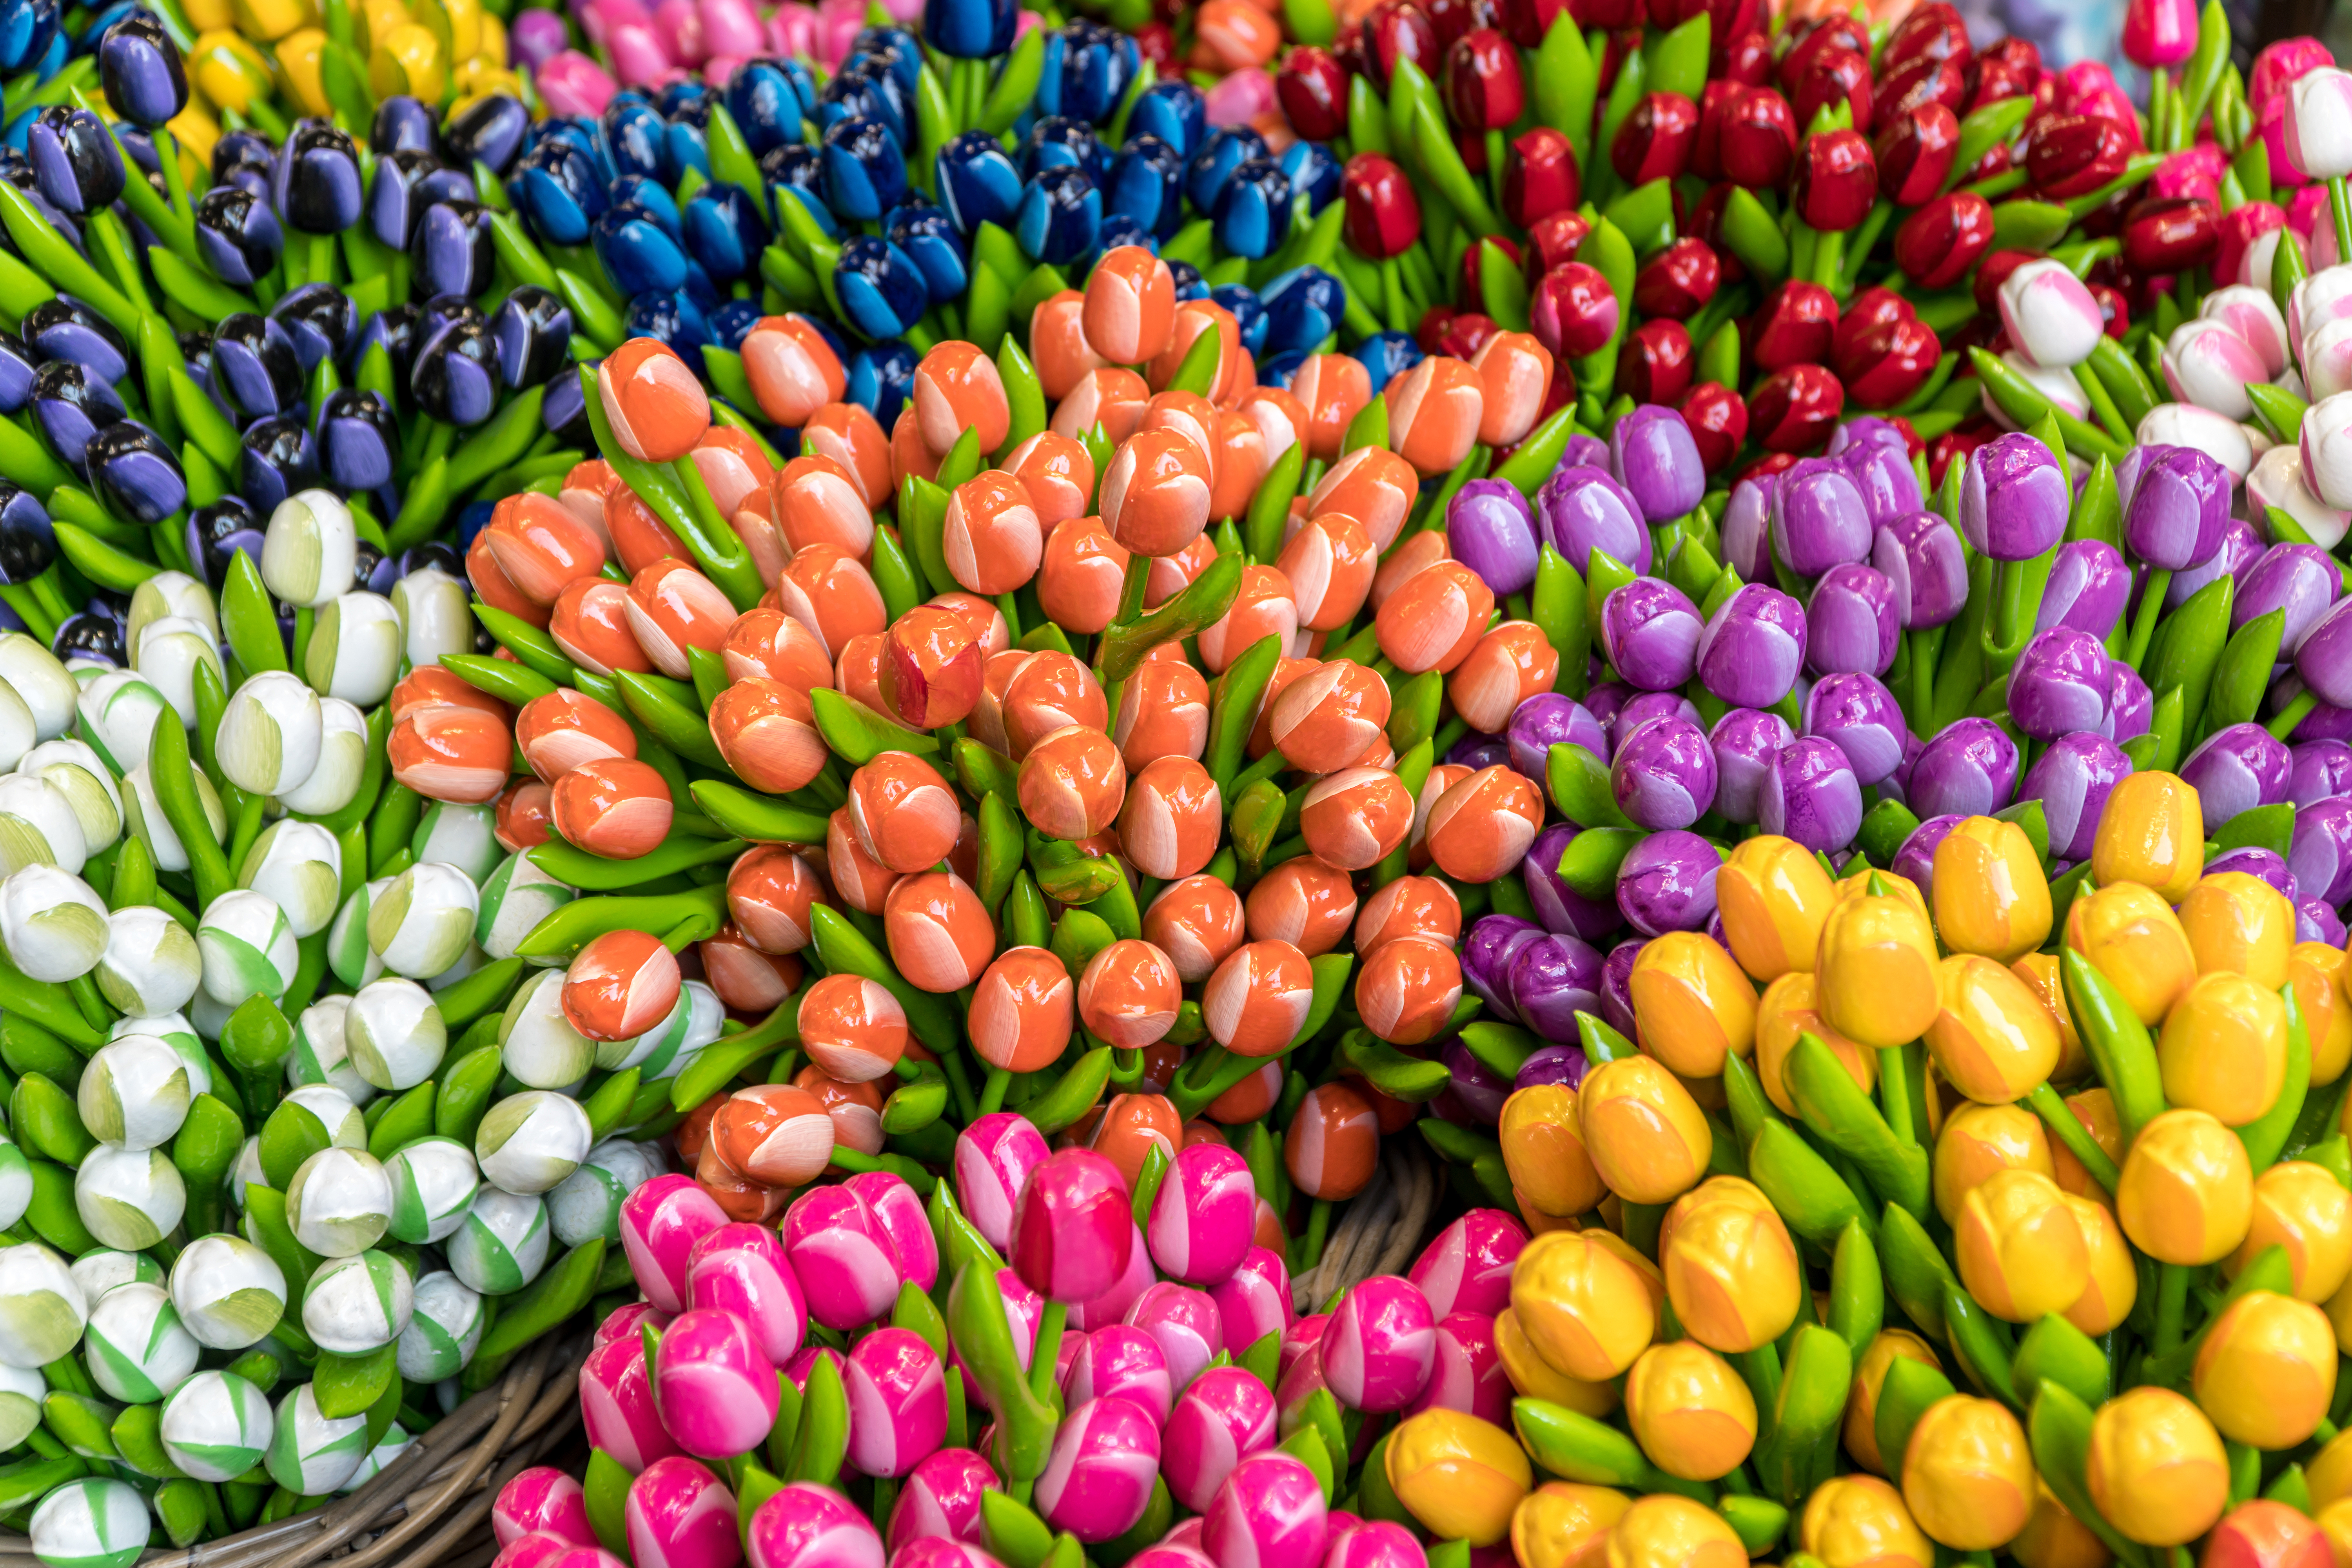 Group of colorful wooden tulips